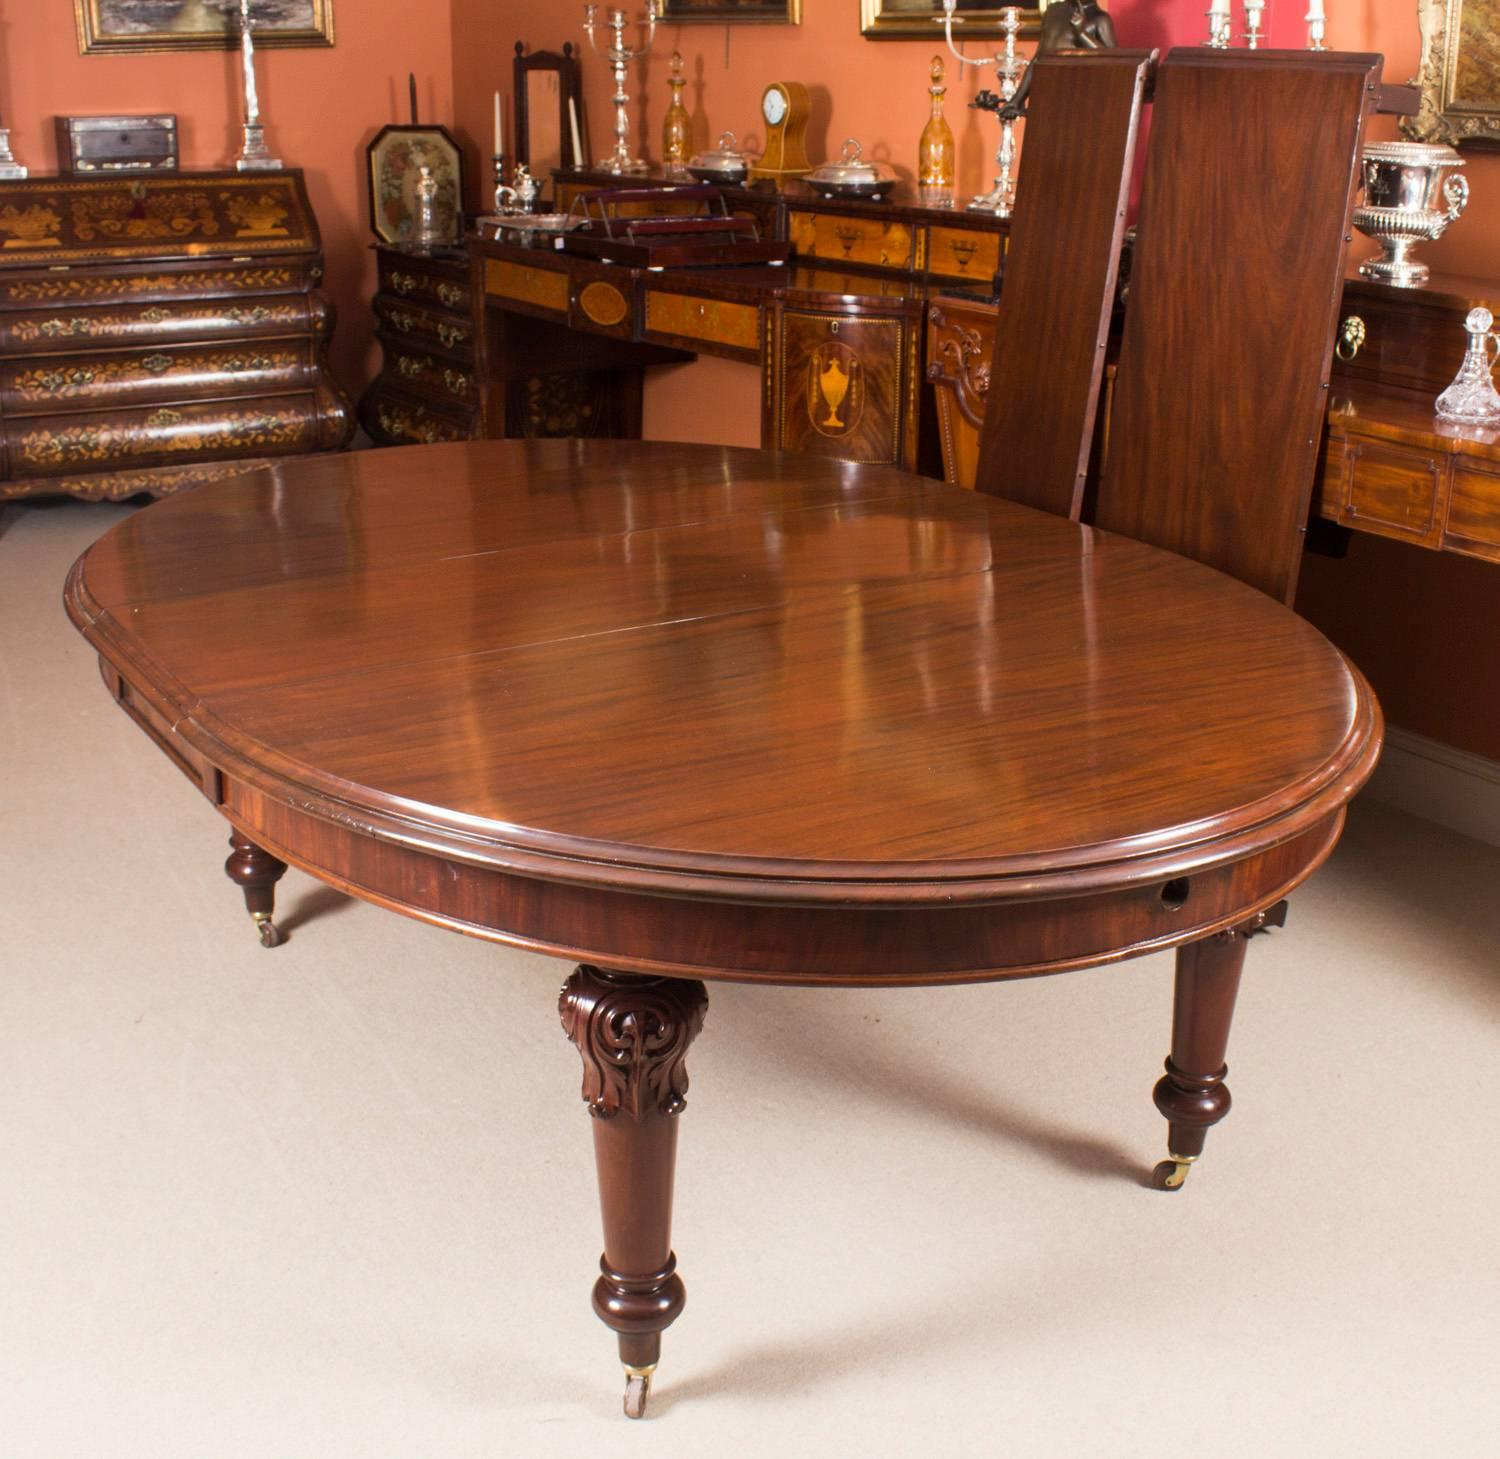 19th Century Victorian Oval Extending Dining Table And Ten Chairs At 1stdibs